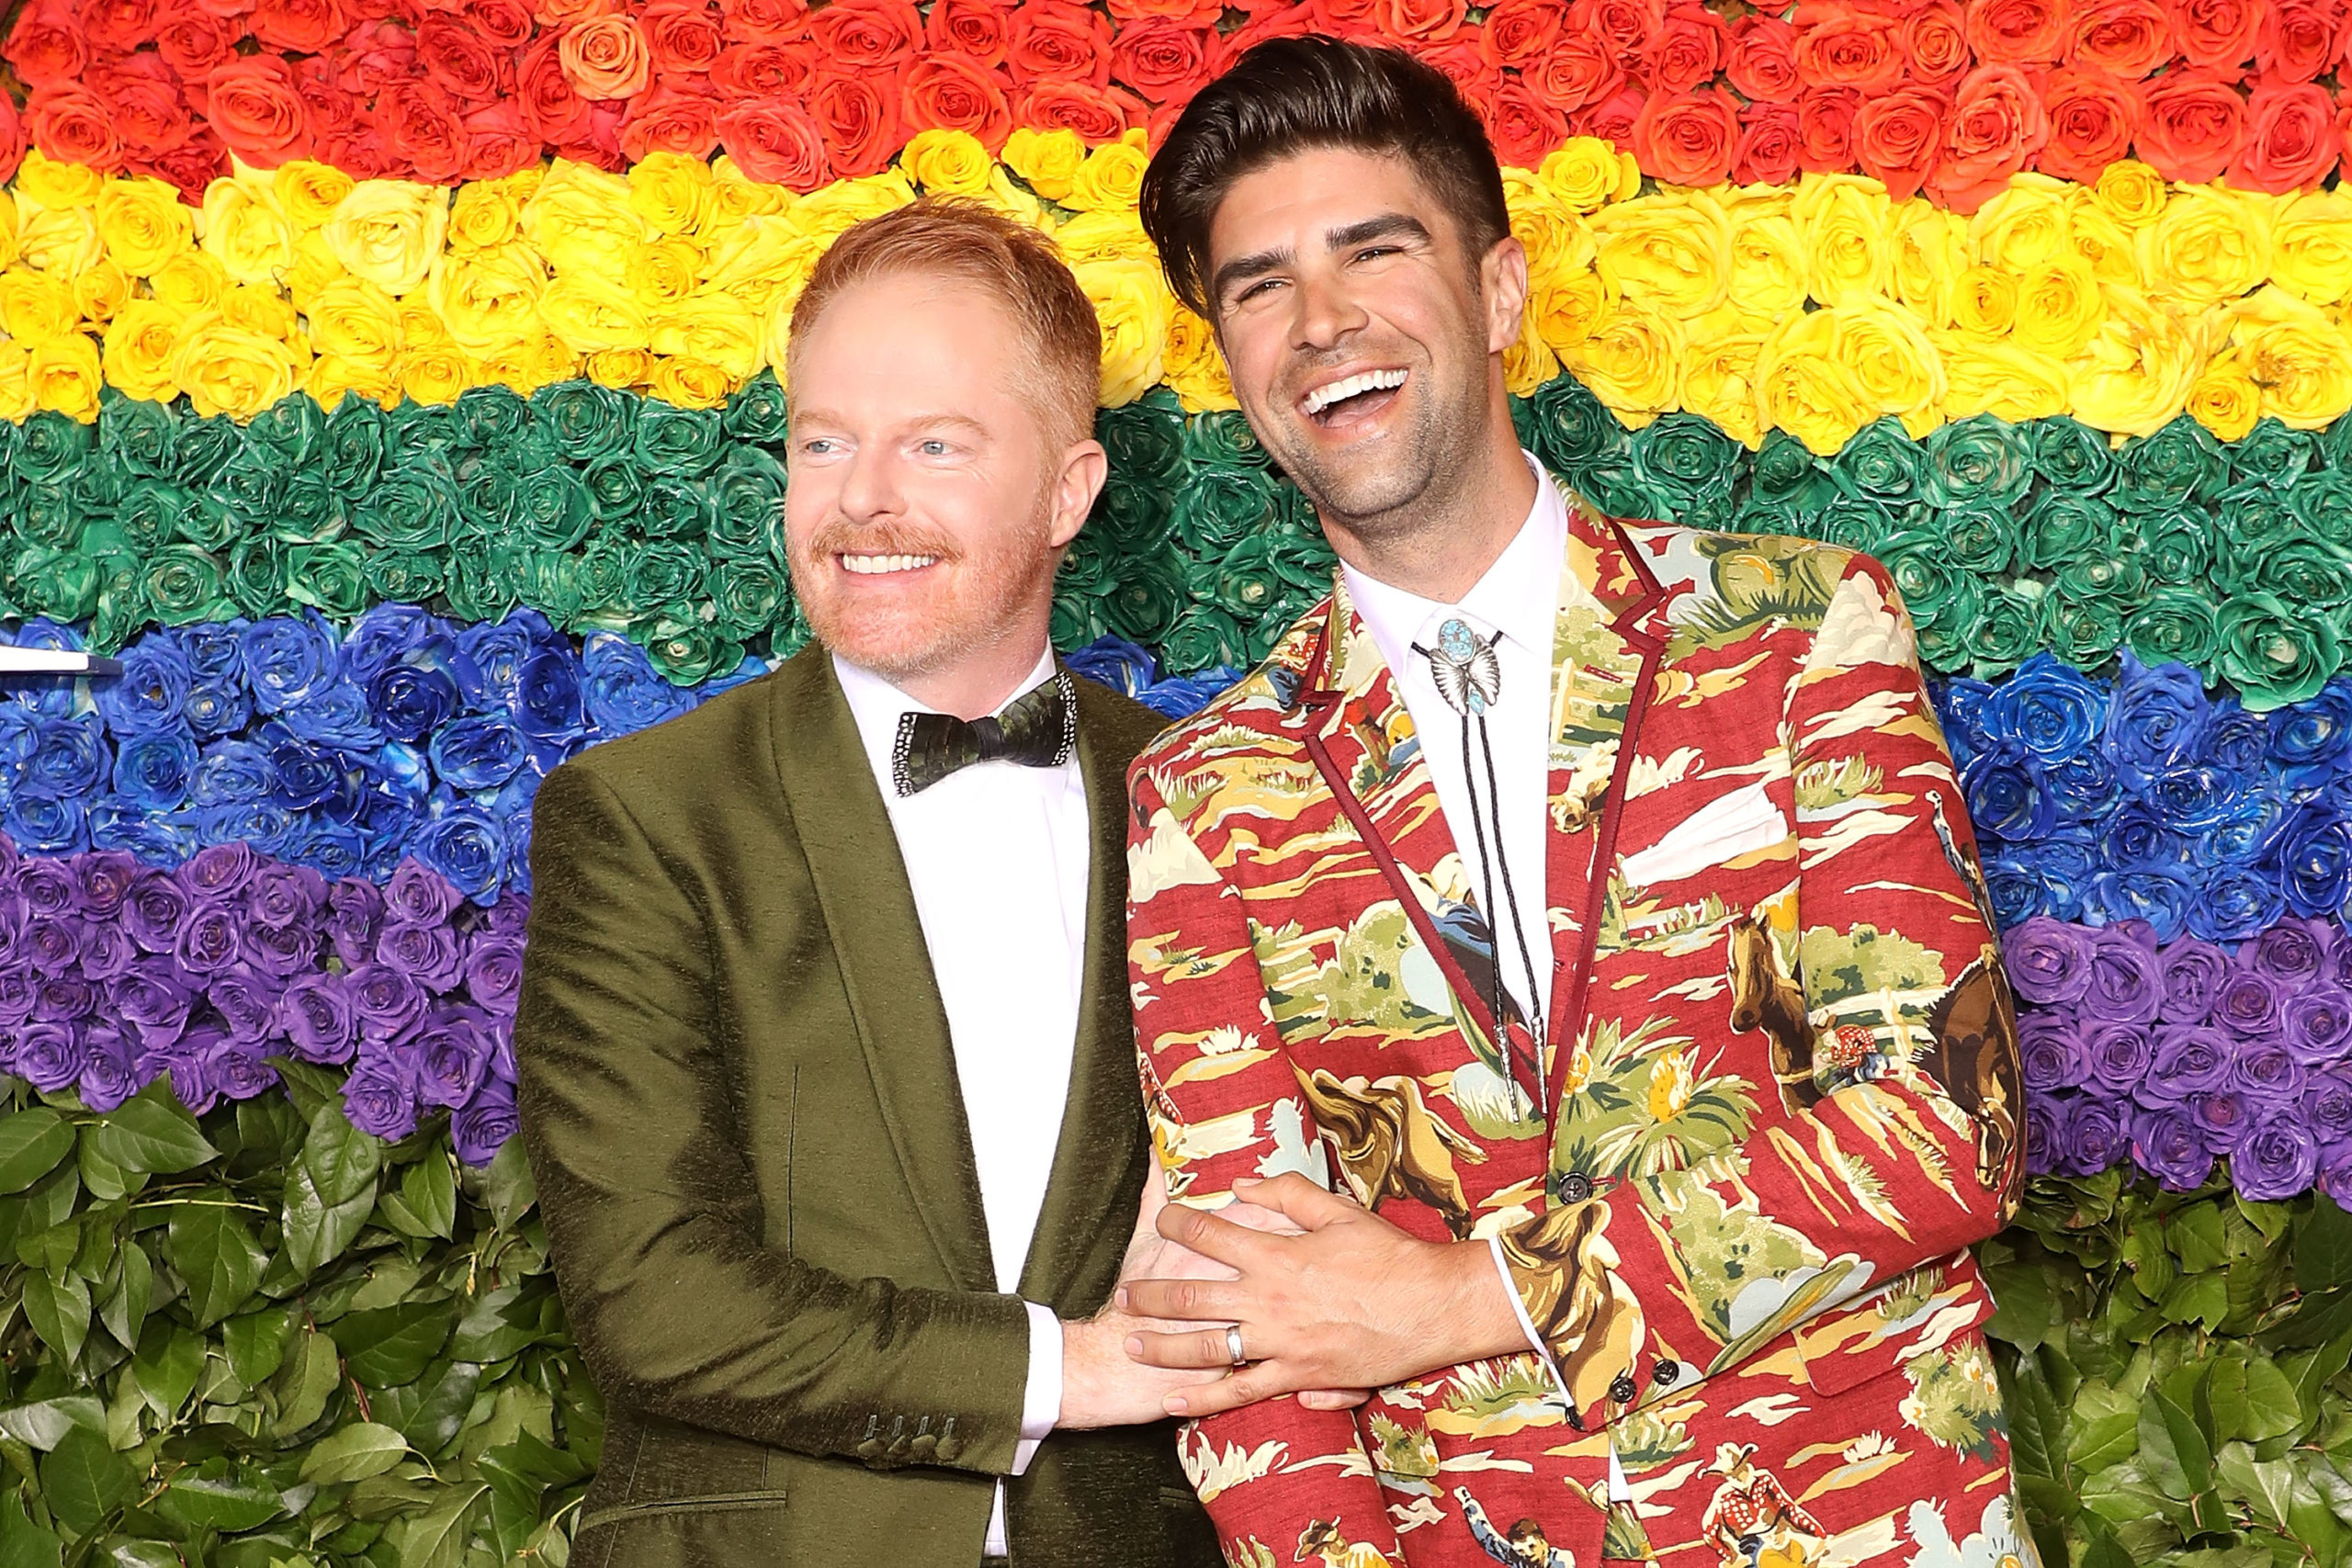 Modern Family star Jesse Tyler Ferguson becomes the proud parent of a beautiful baby boy with his husband